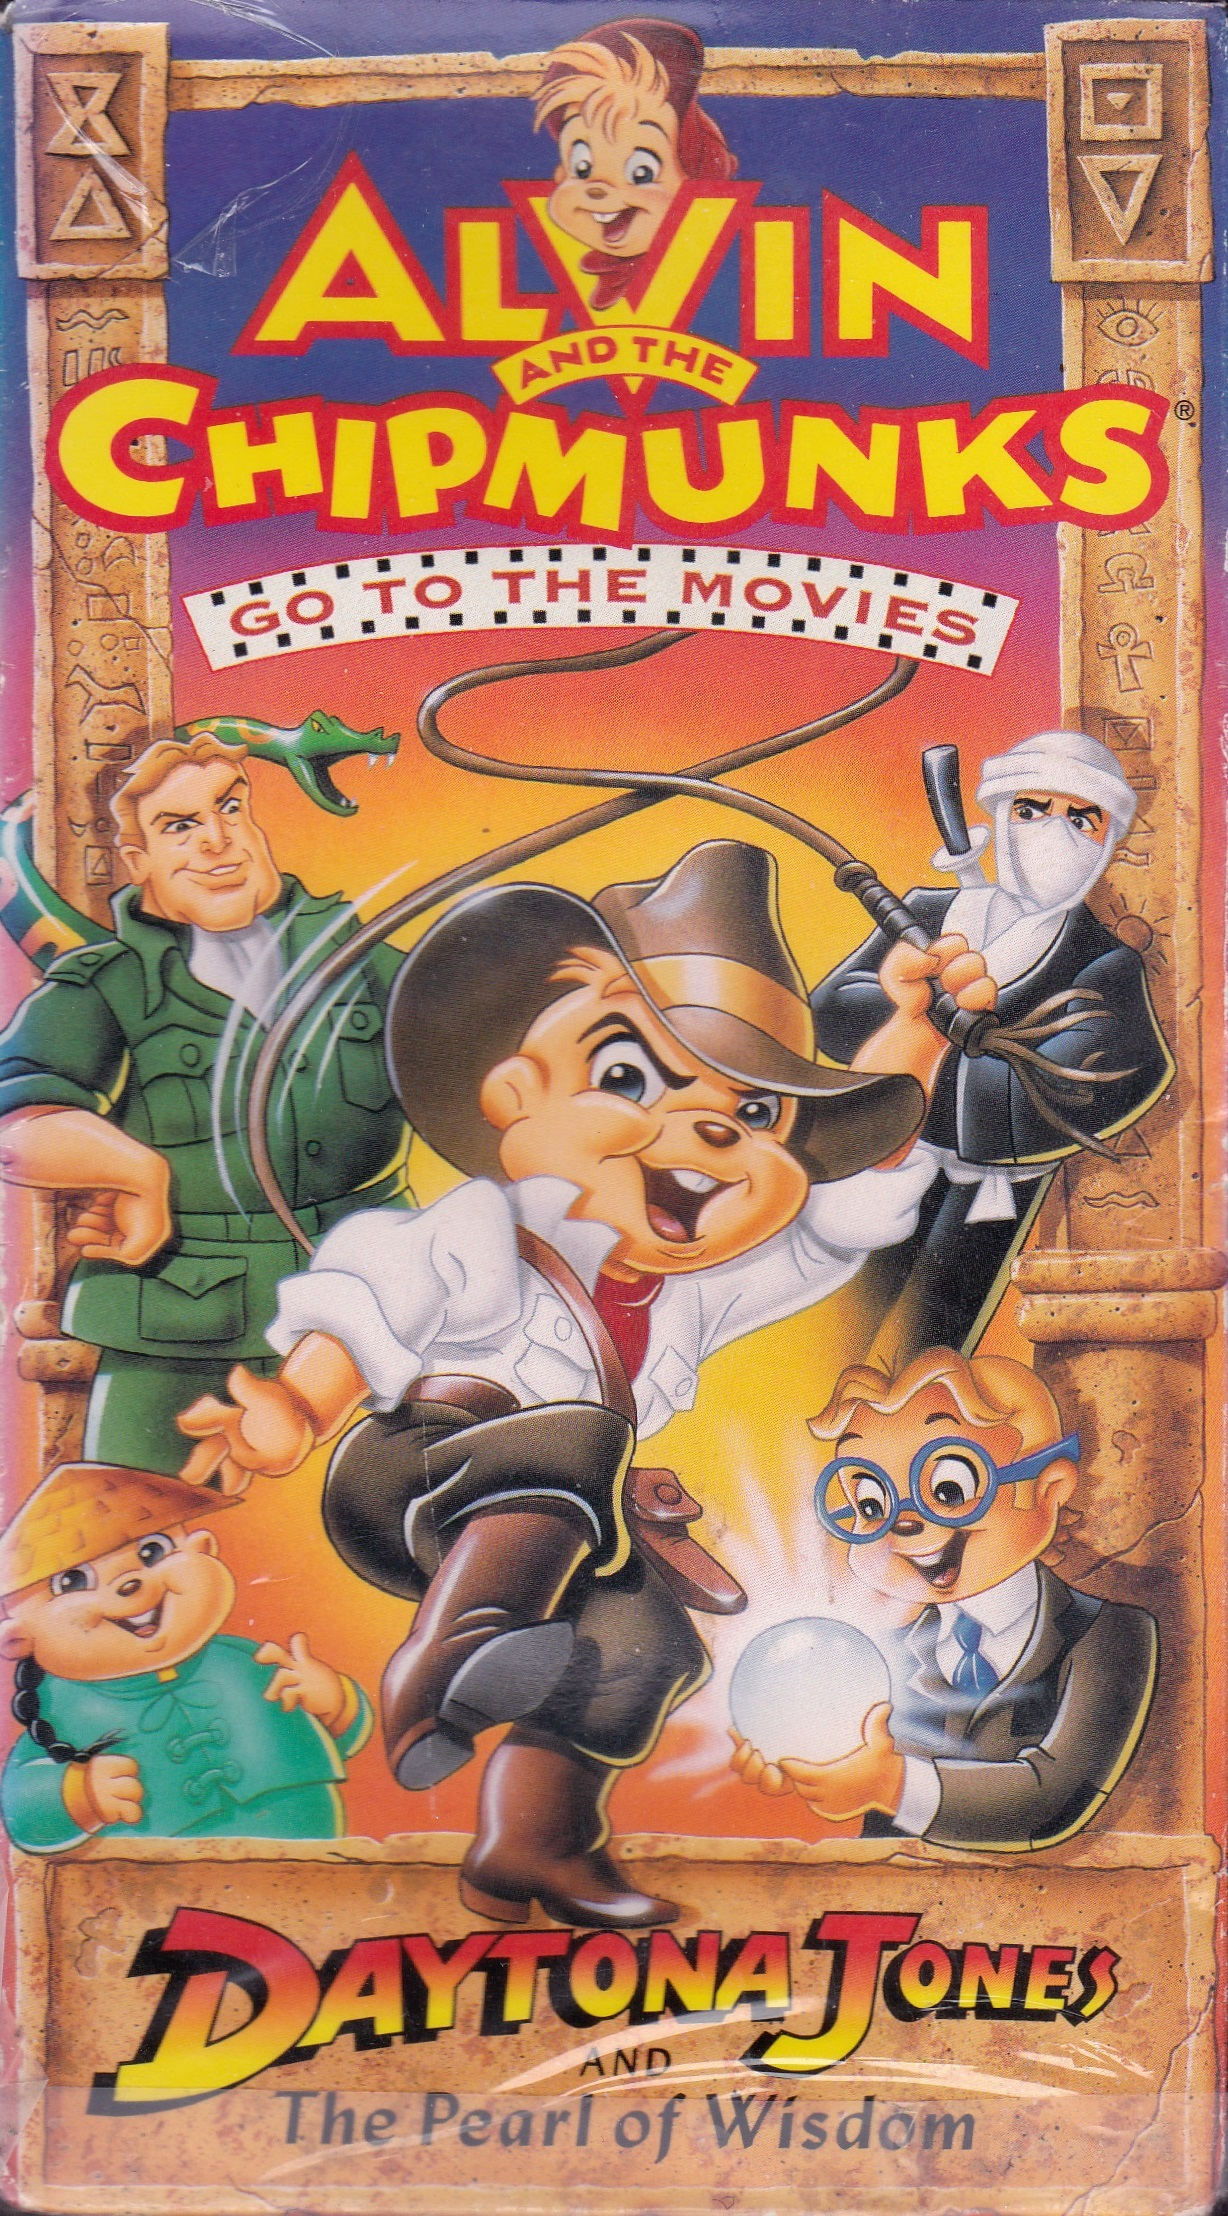 Alvin and the Chipmunks Go to the Movies: Daytona Jones and the Pearl of Wisdom (1995 VHS)